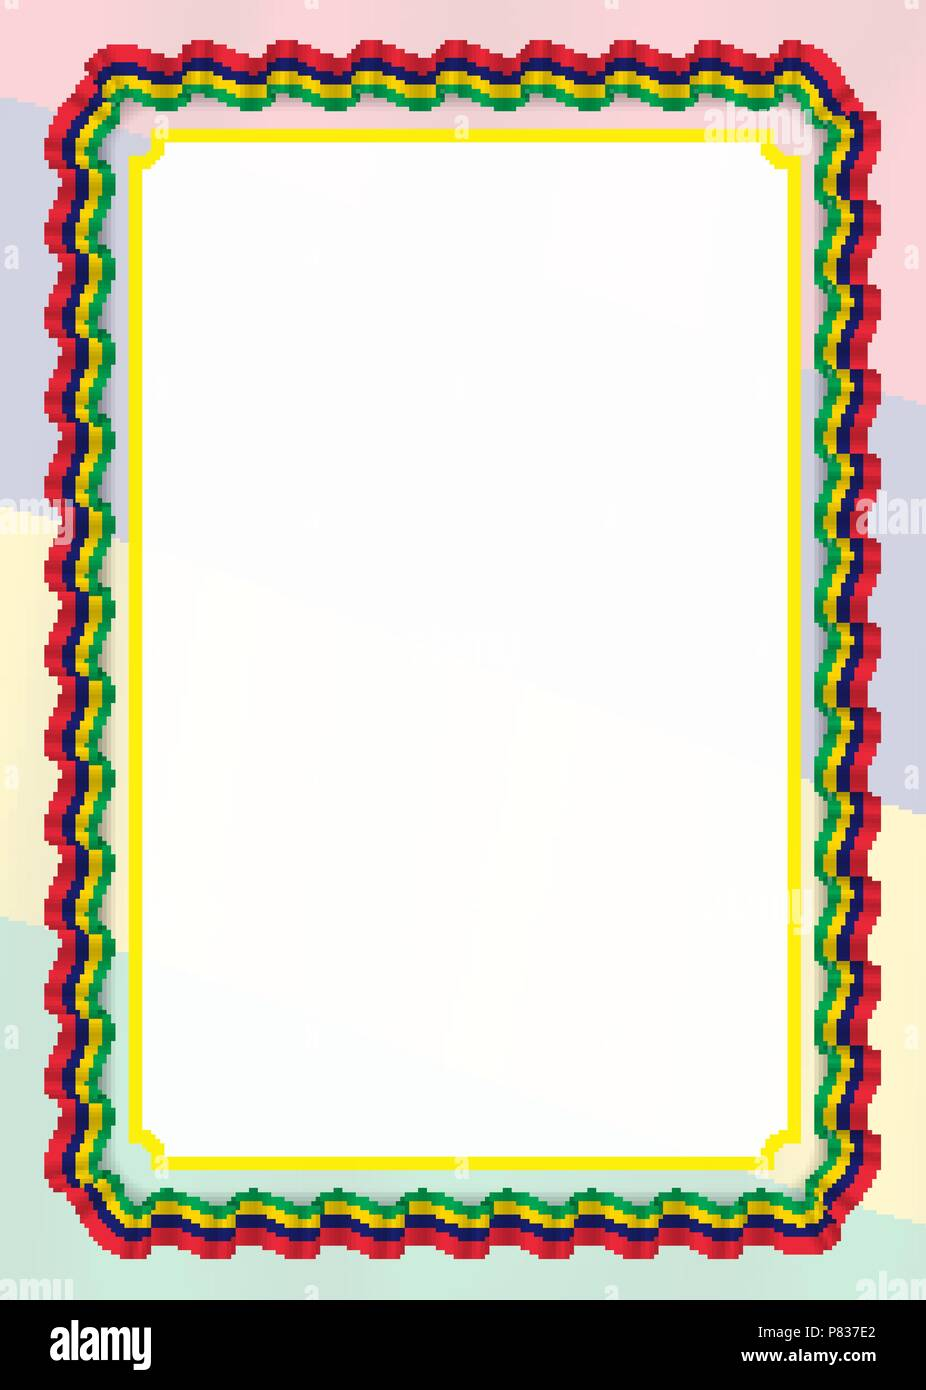 frame and border of ribbon with mauritius flag template elements